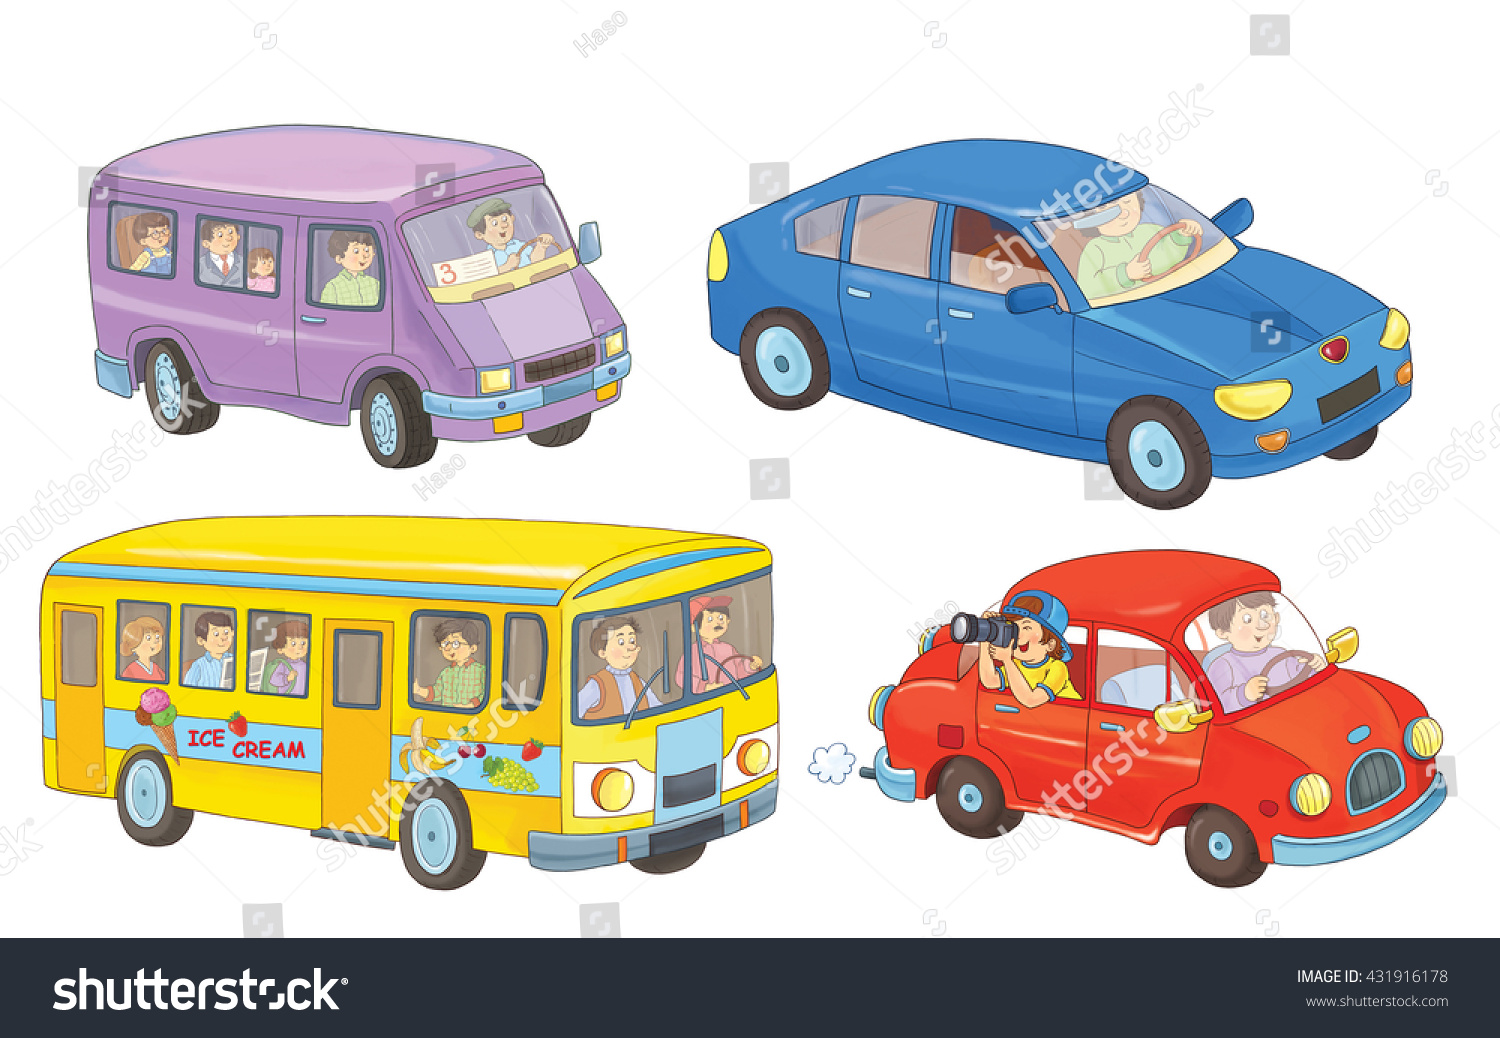 Two Cars A Bus And Minibus Coloring Book Page